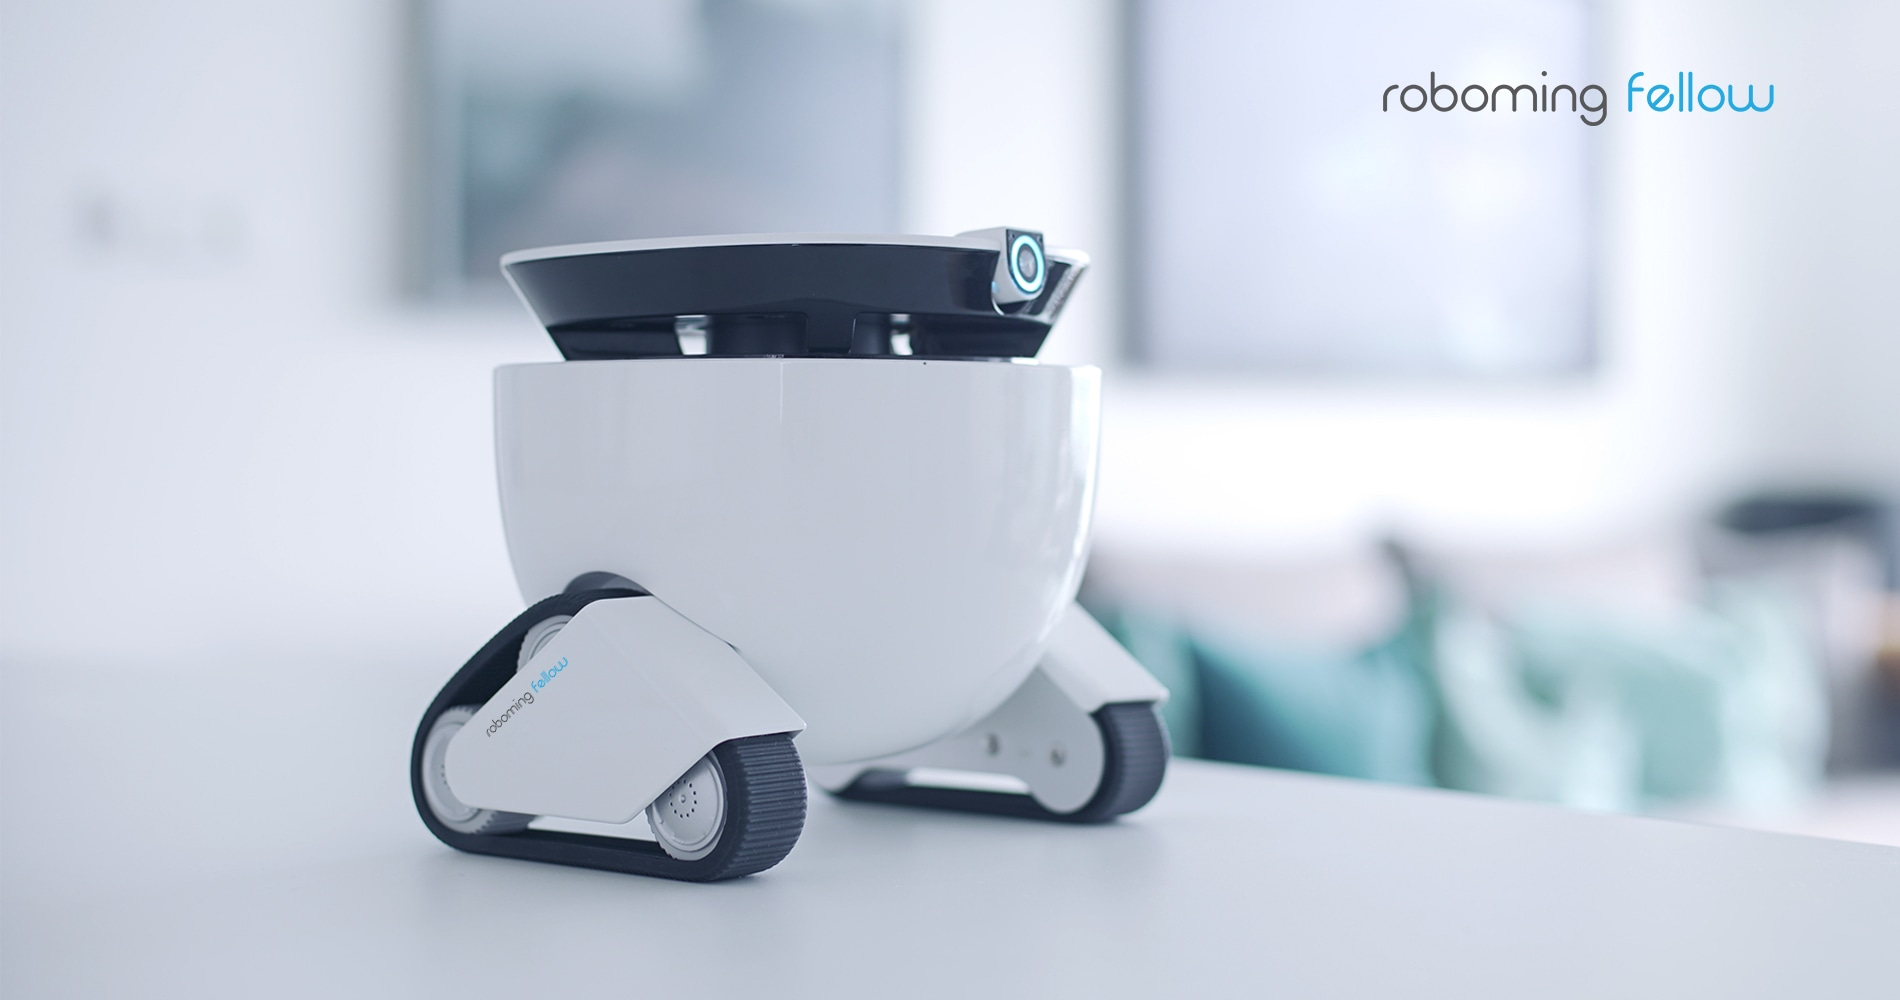 roboming fellow a personal robot for companionship home security. Black Bedroom Furniture Sets. Home Design Ideas